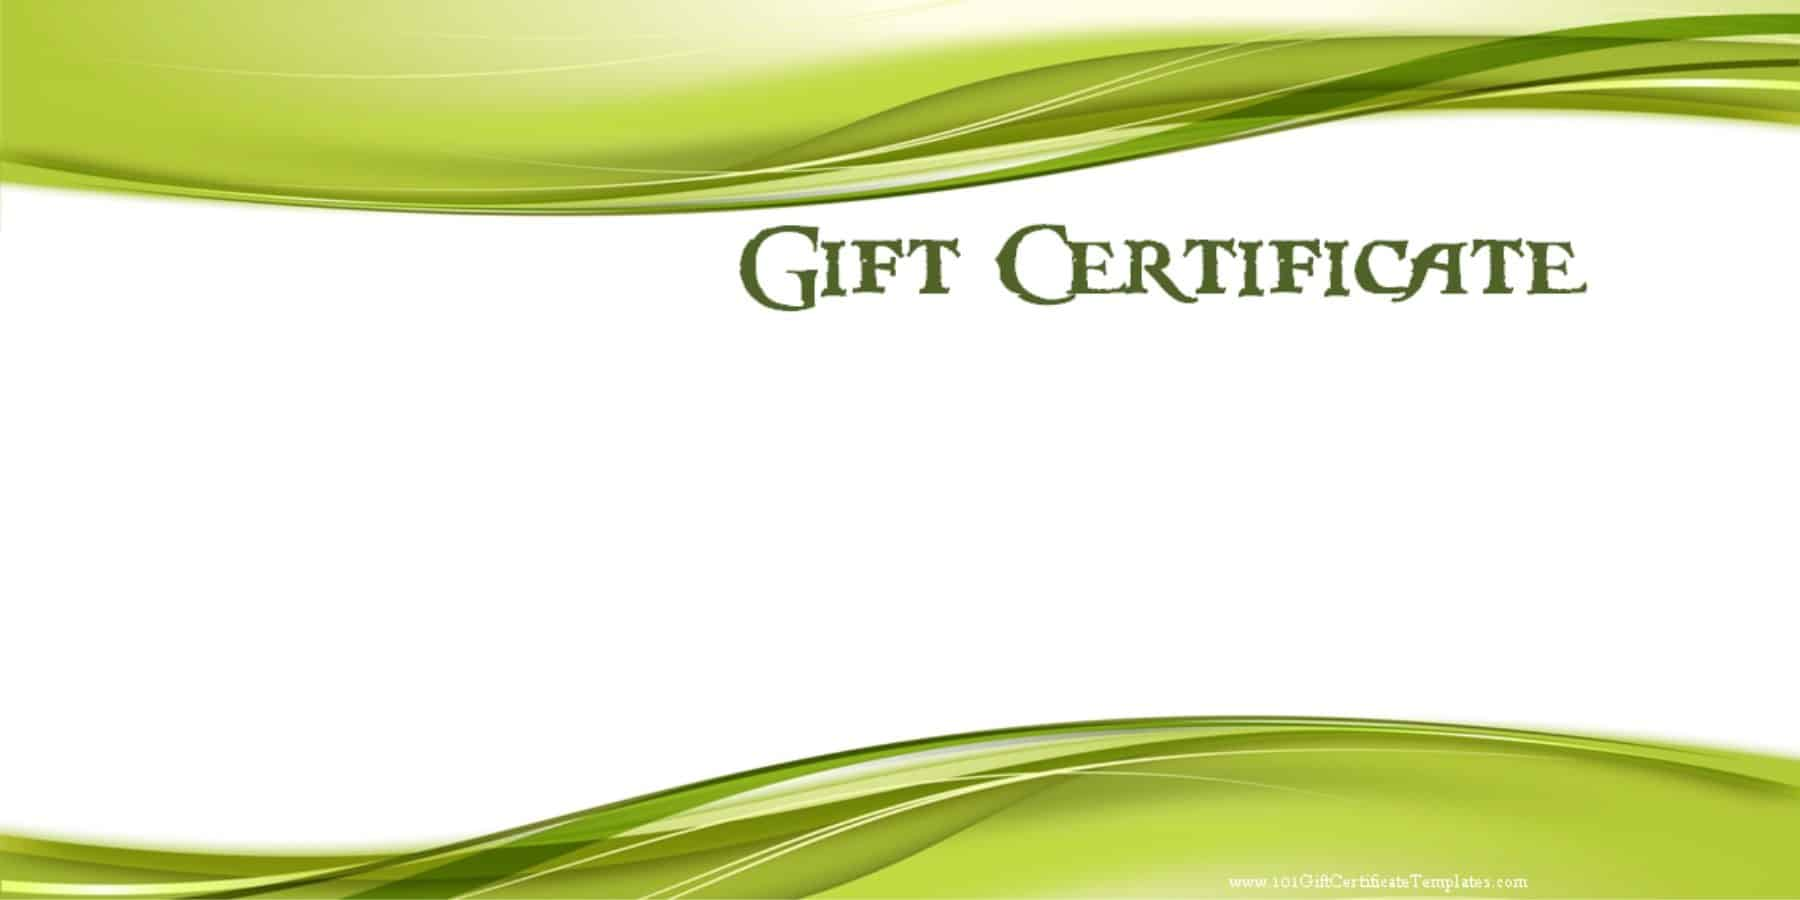 Blank Gift Certificate Which Can Be Customized  Make Your Own Gift Certificates Free